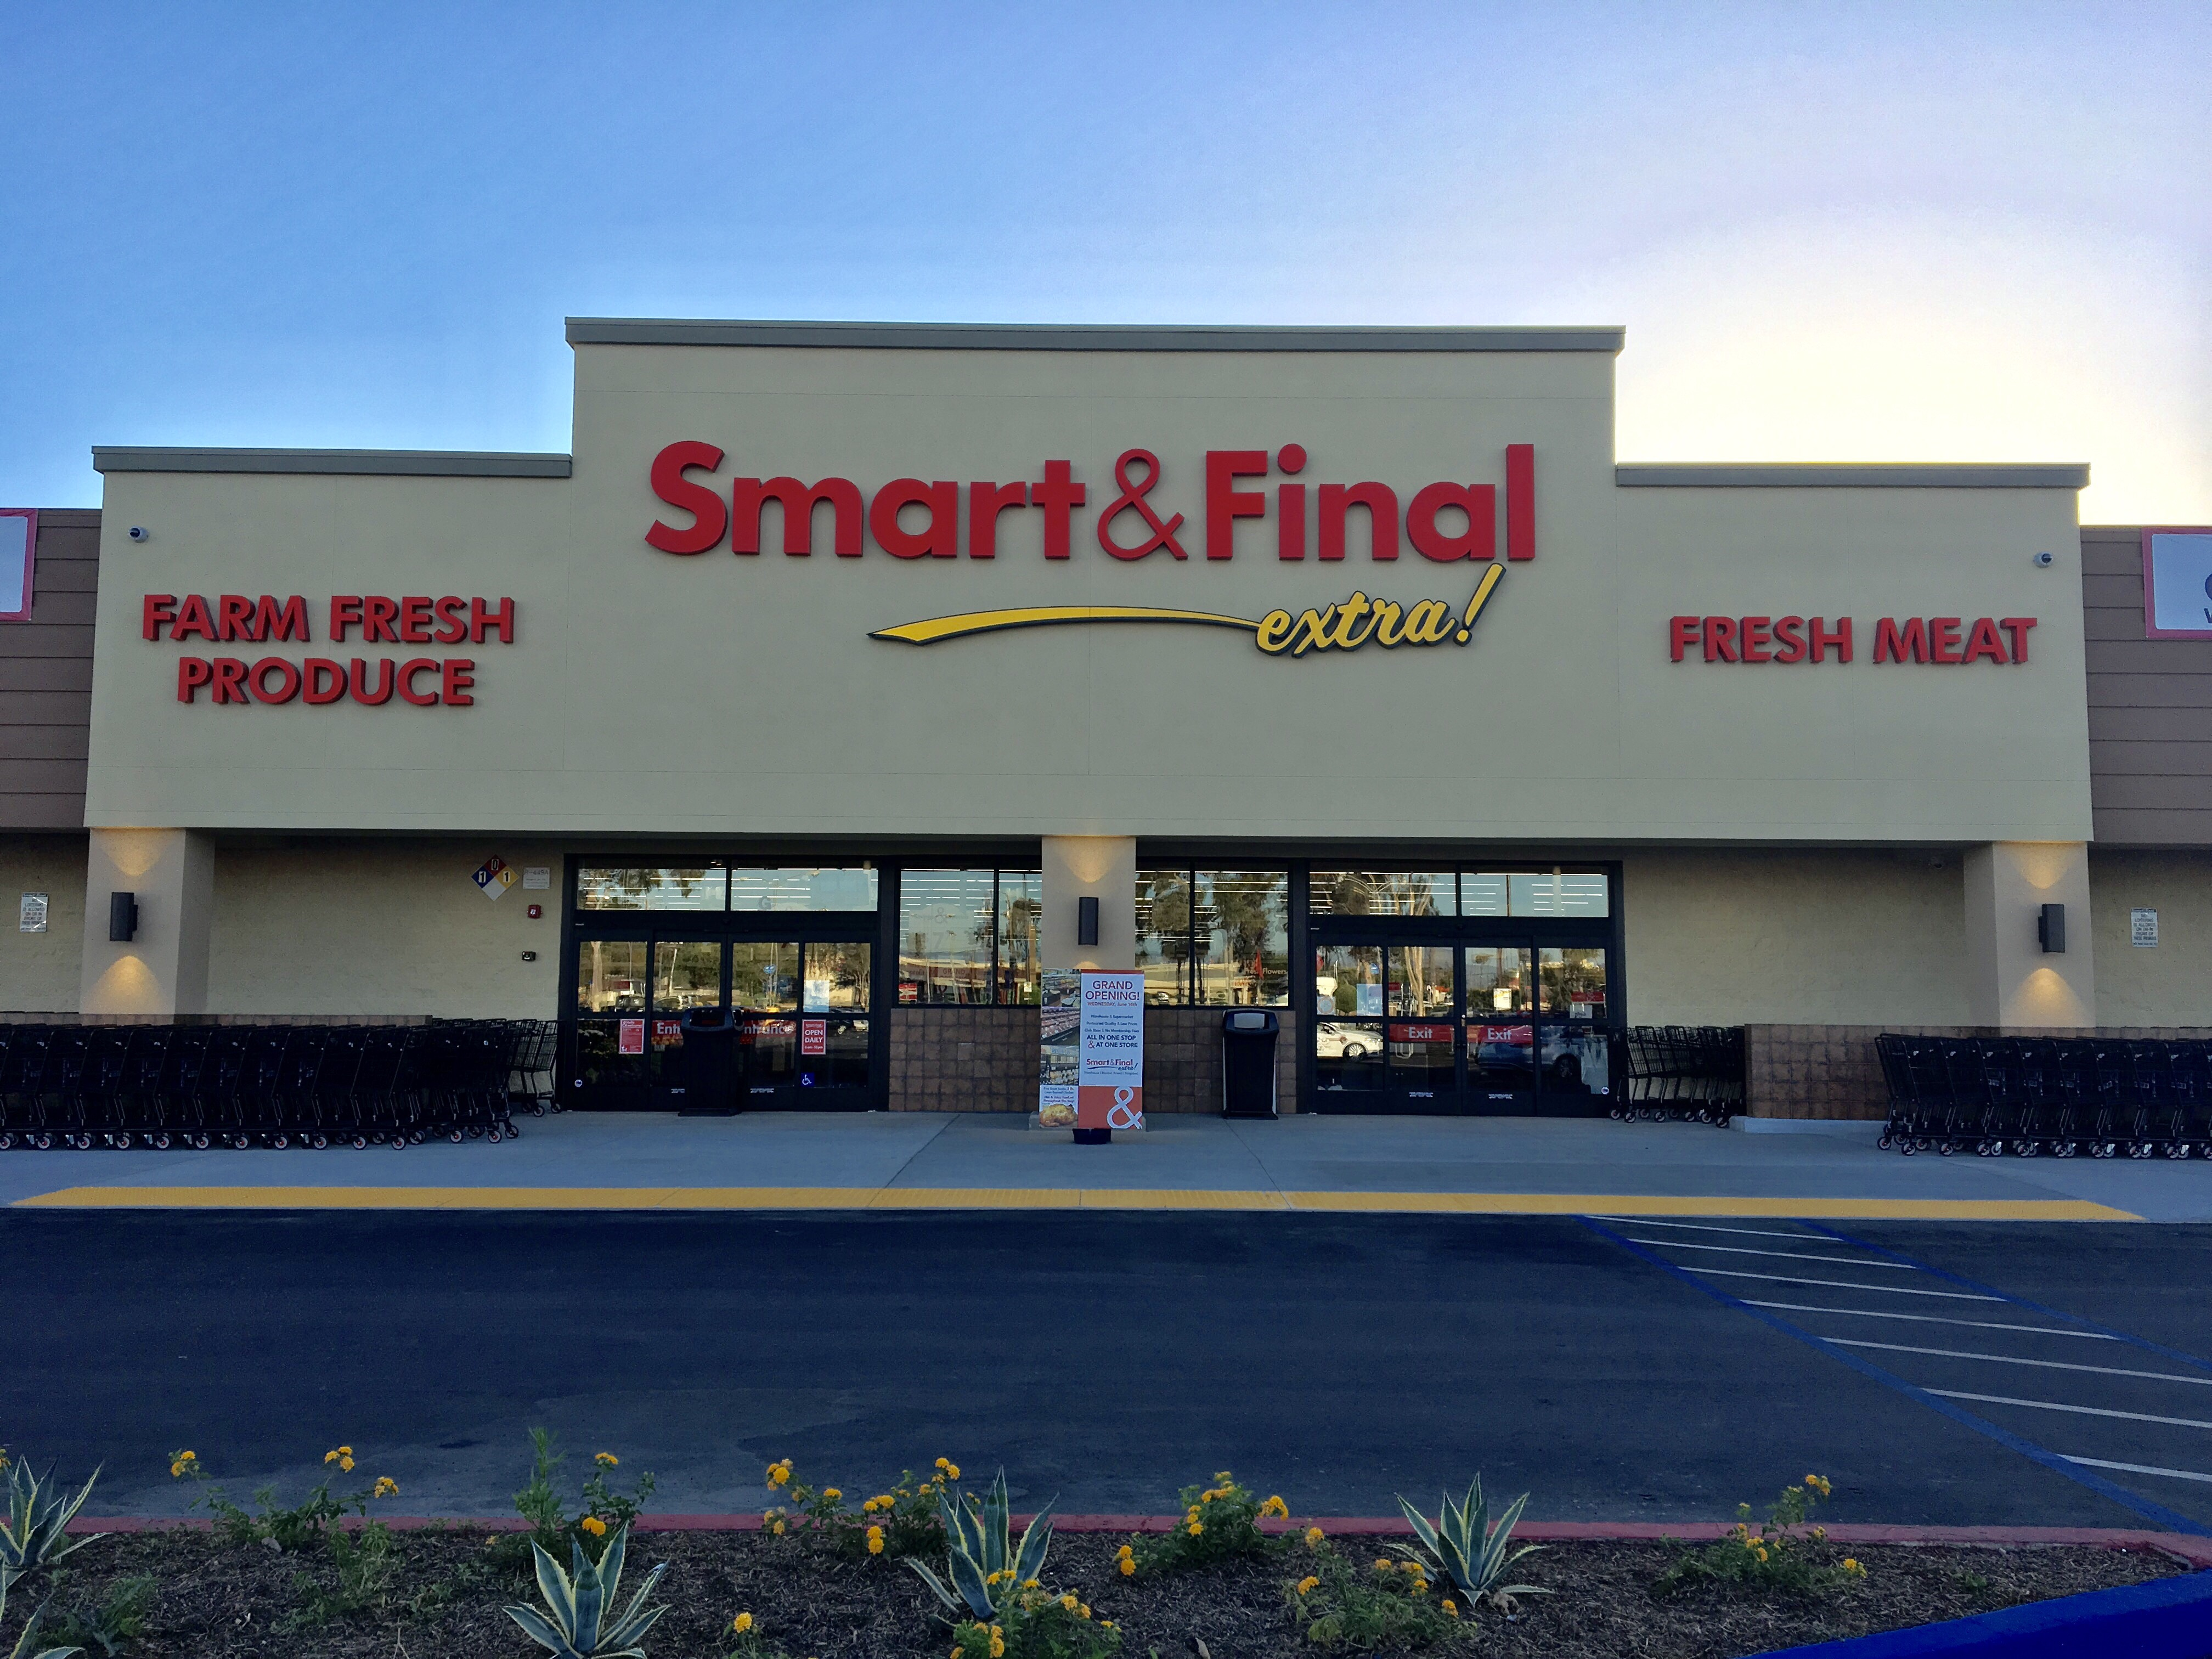 Smart & Final Store Front - Grocery Store in Garden Grove, CA